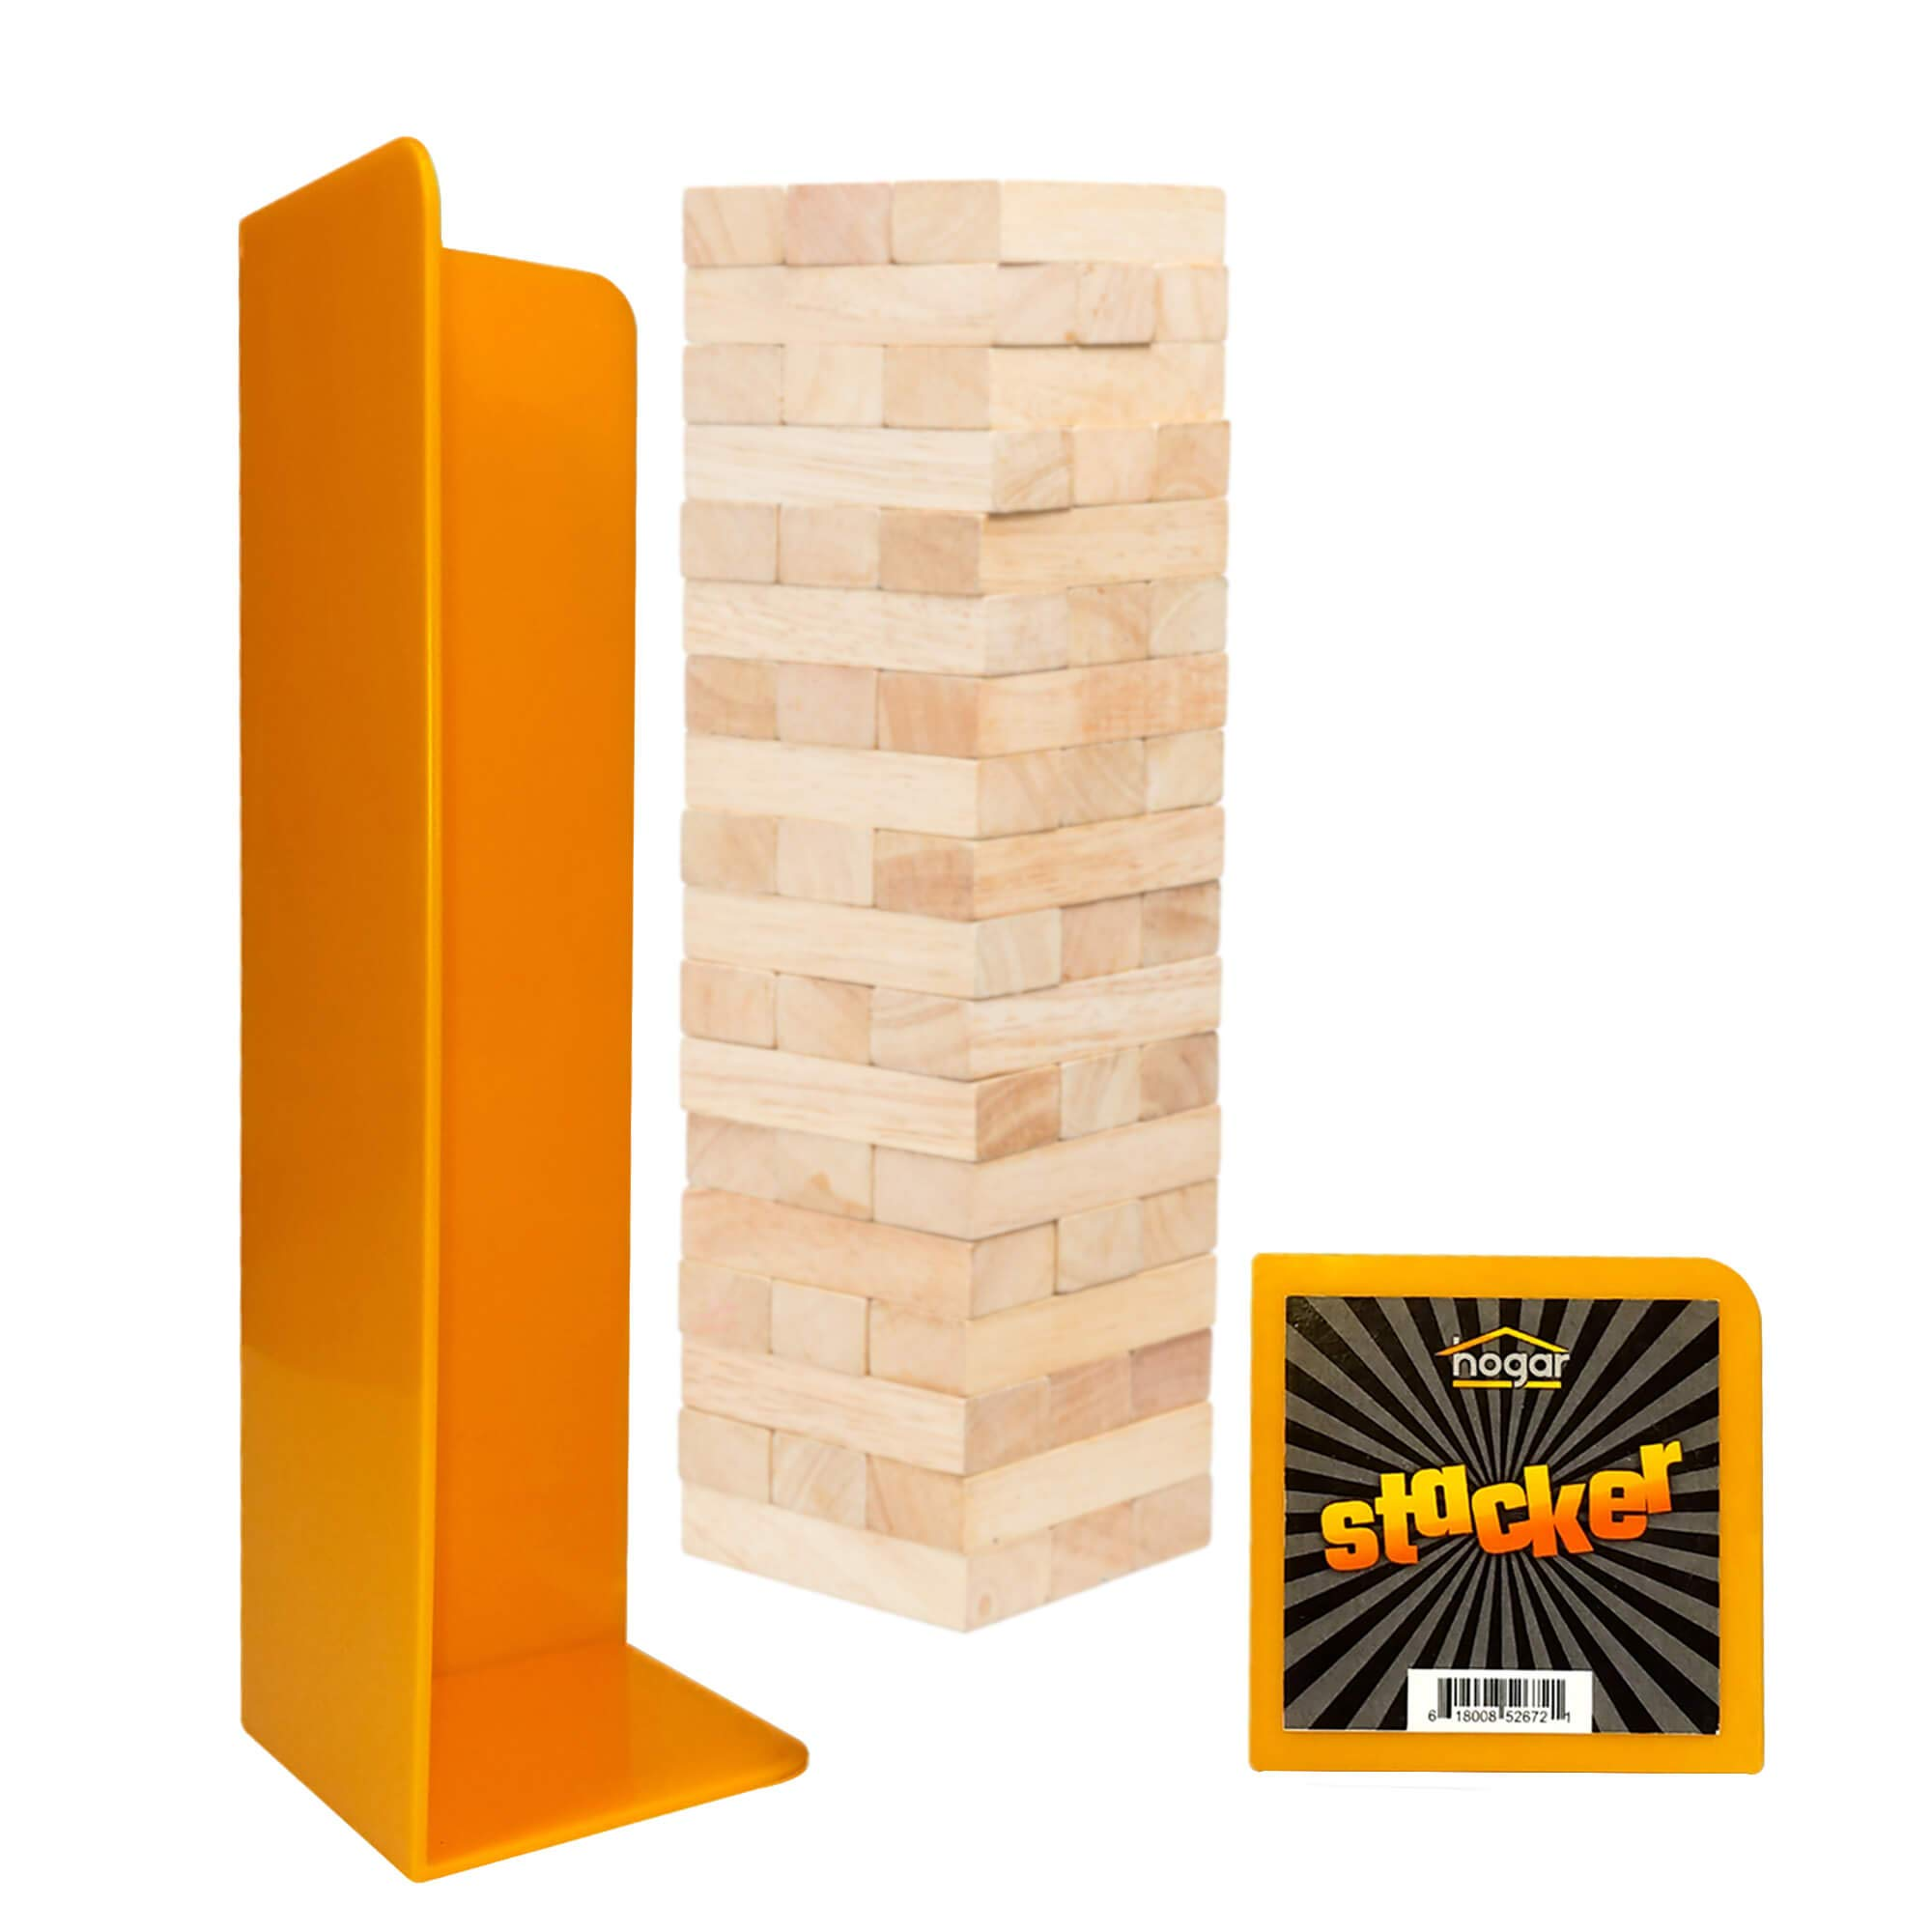 Wood Block Tower Stacking Tray Game Accessory ages 6 to adult - compatible with Tipsy Tower, Lewo, WE Games and more